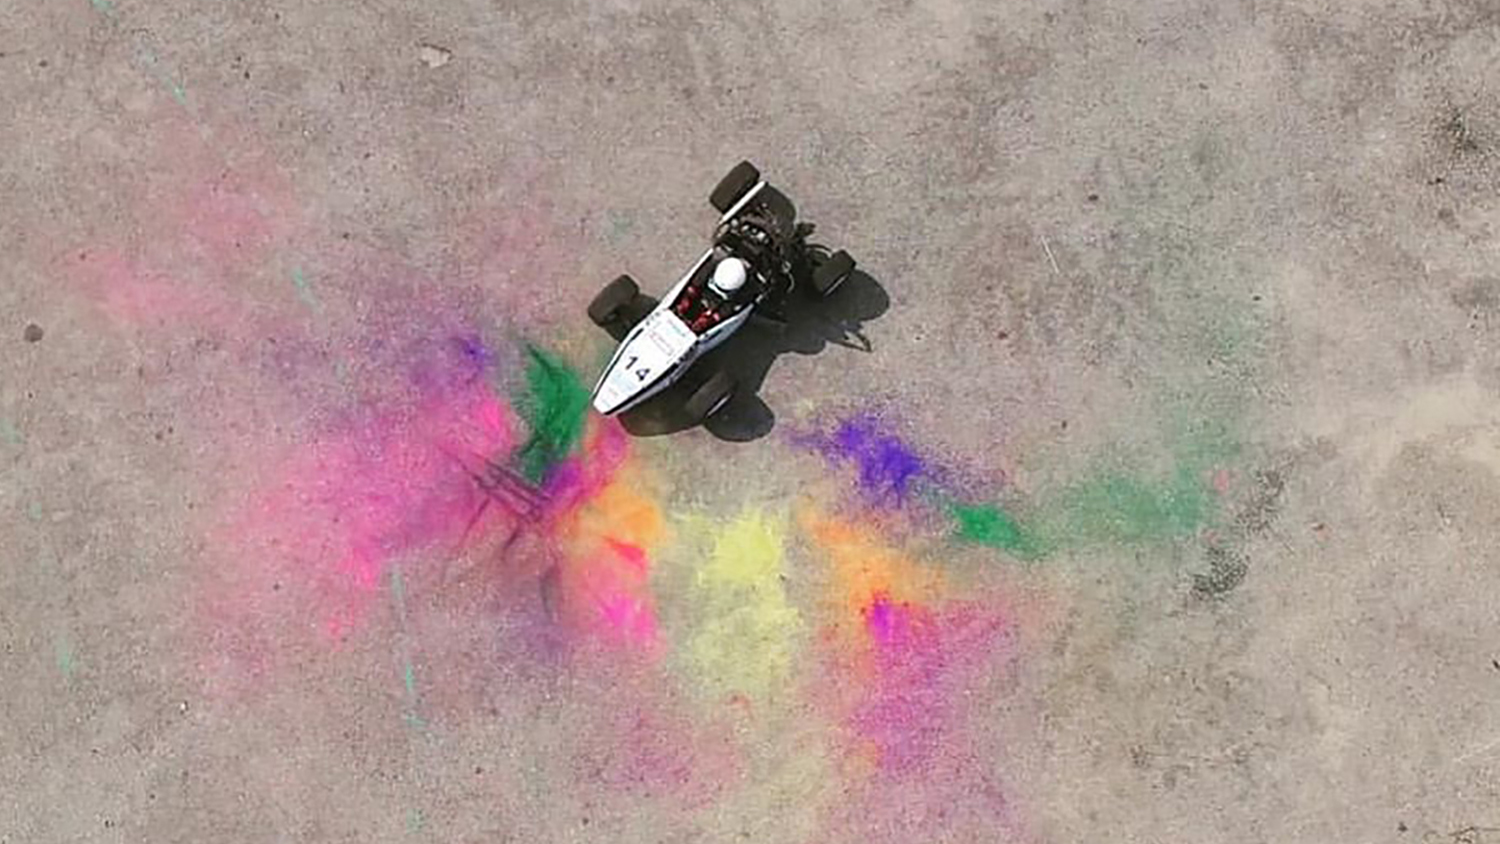 "The photo ""testing + holi"" shows an engineering project centered in colorful powder."